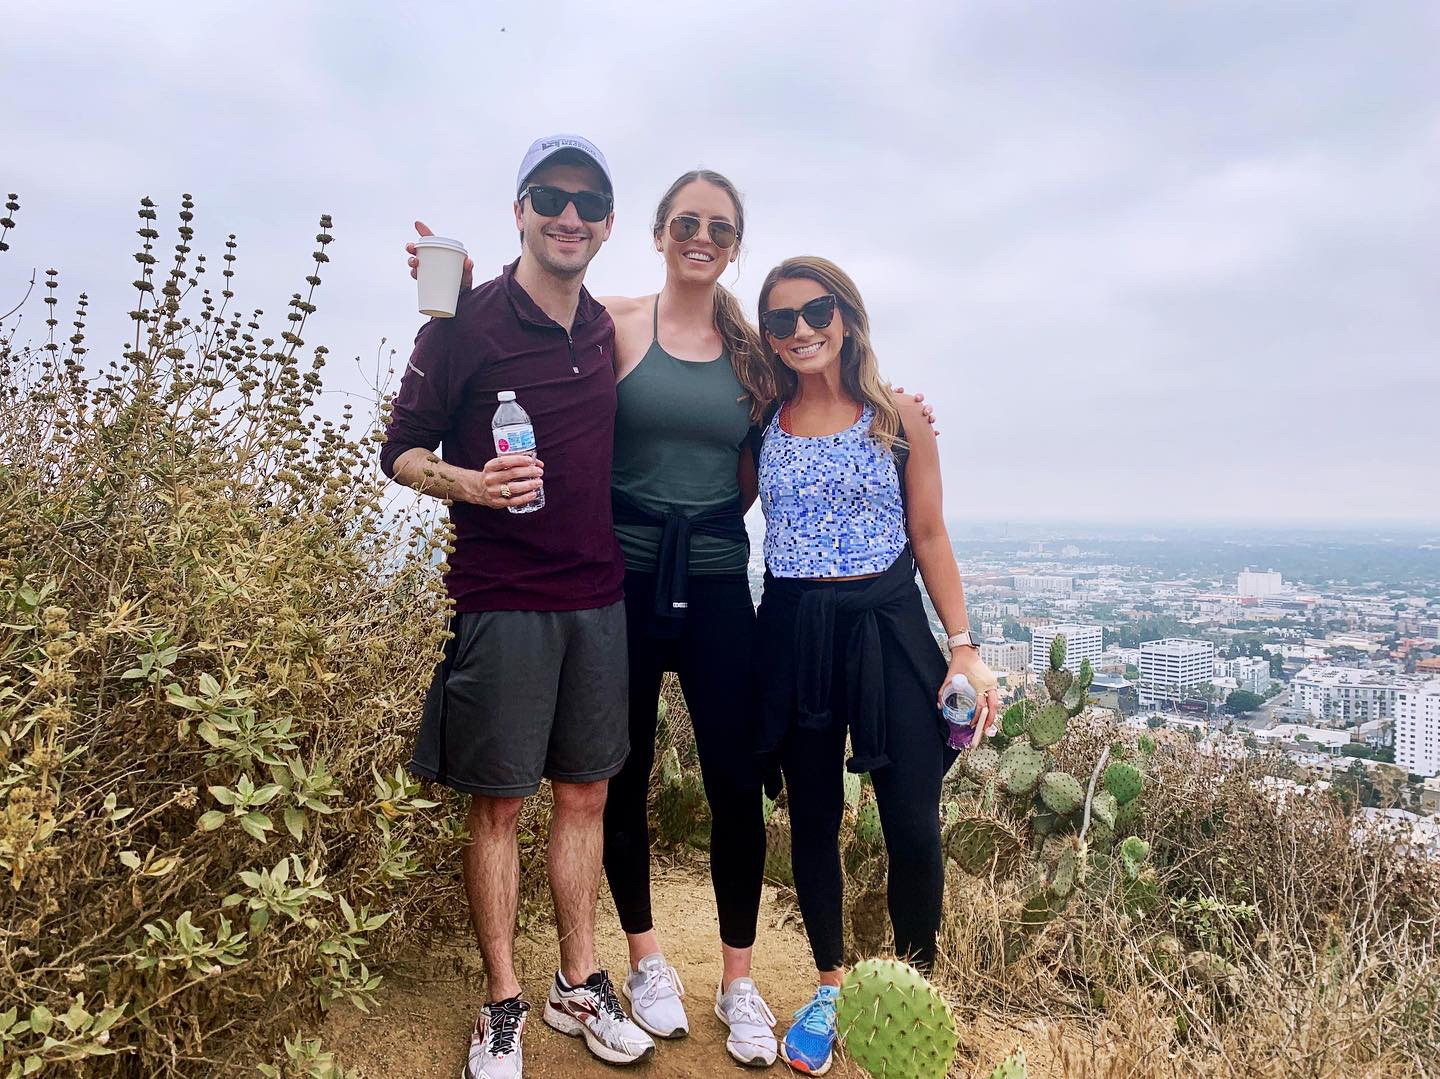 John Thomas, me and Staci on Runyon Canyon Summit. Perfect way to start our LA morning!